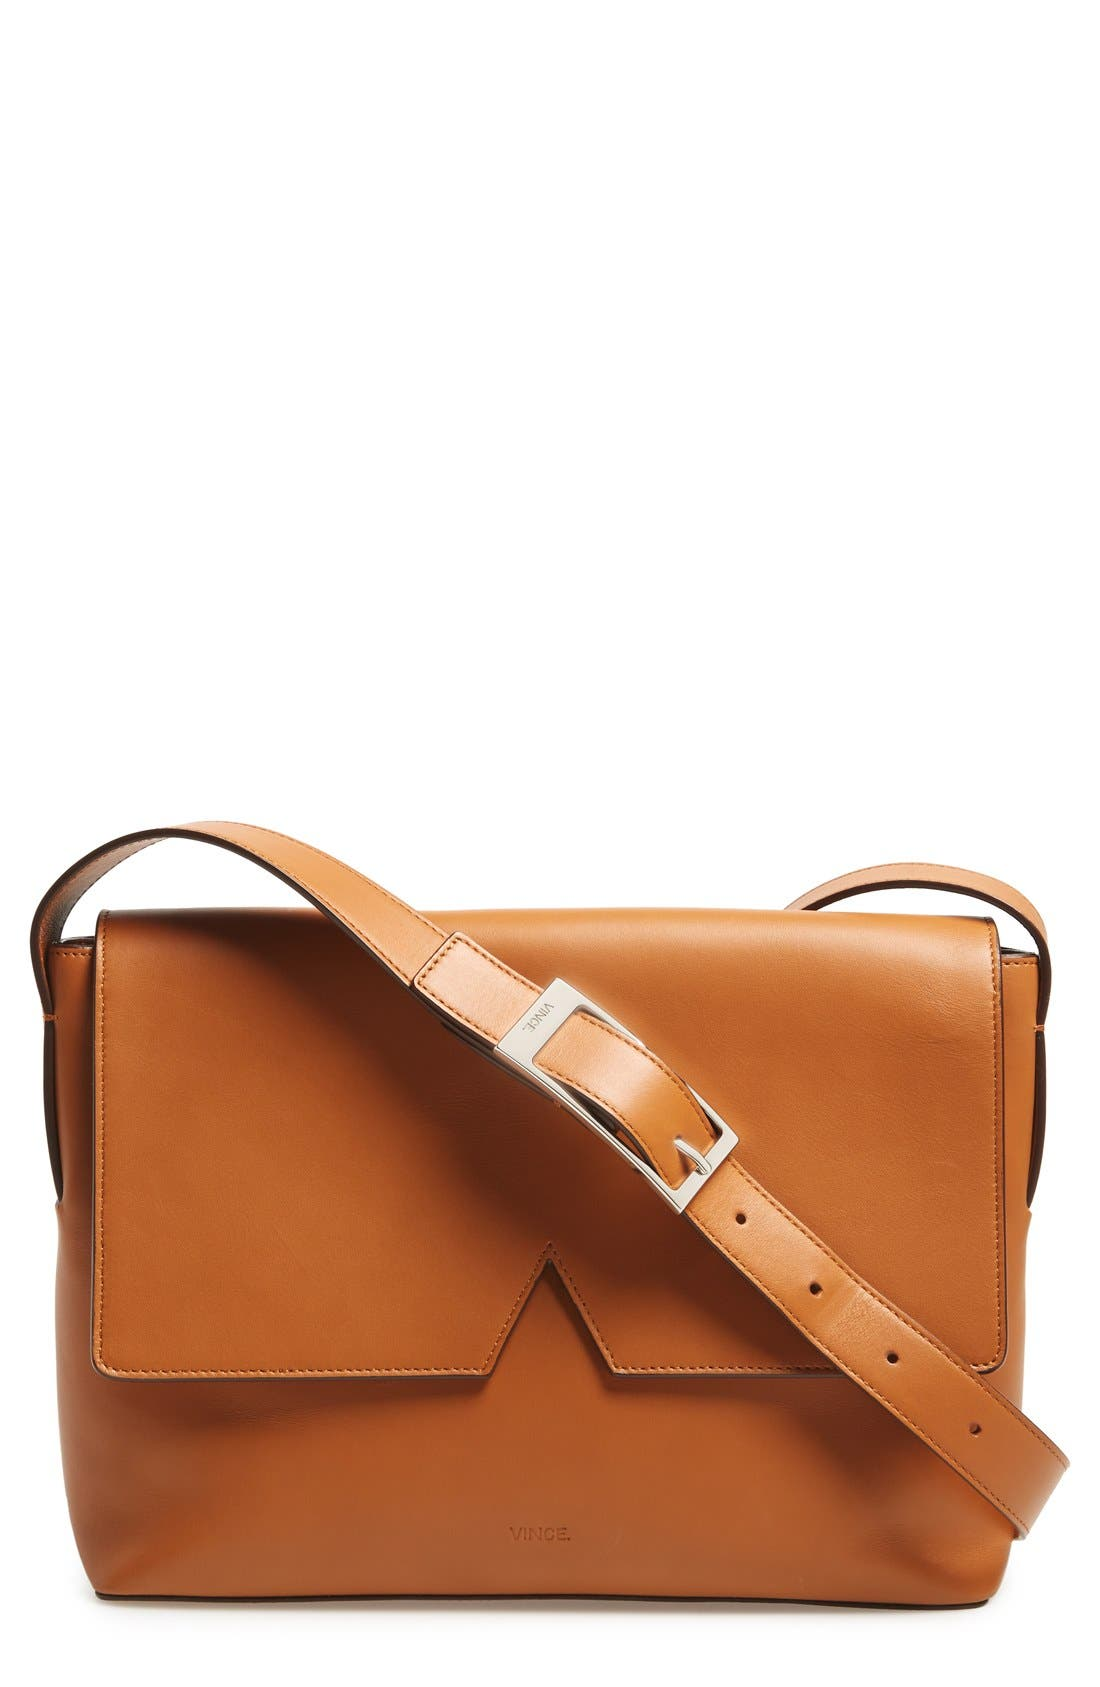 Alternate Image 1 Selected - Vince 'Signature Collection - Medium' Leather Messenger Bag